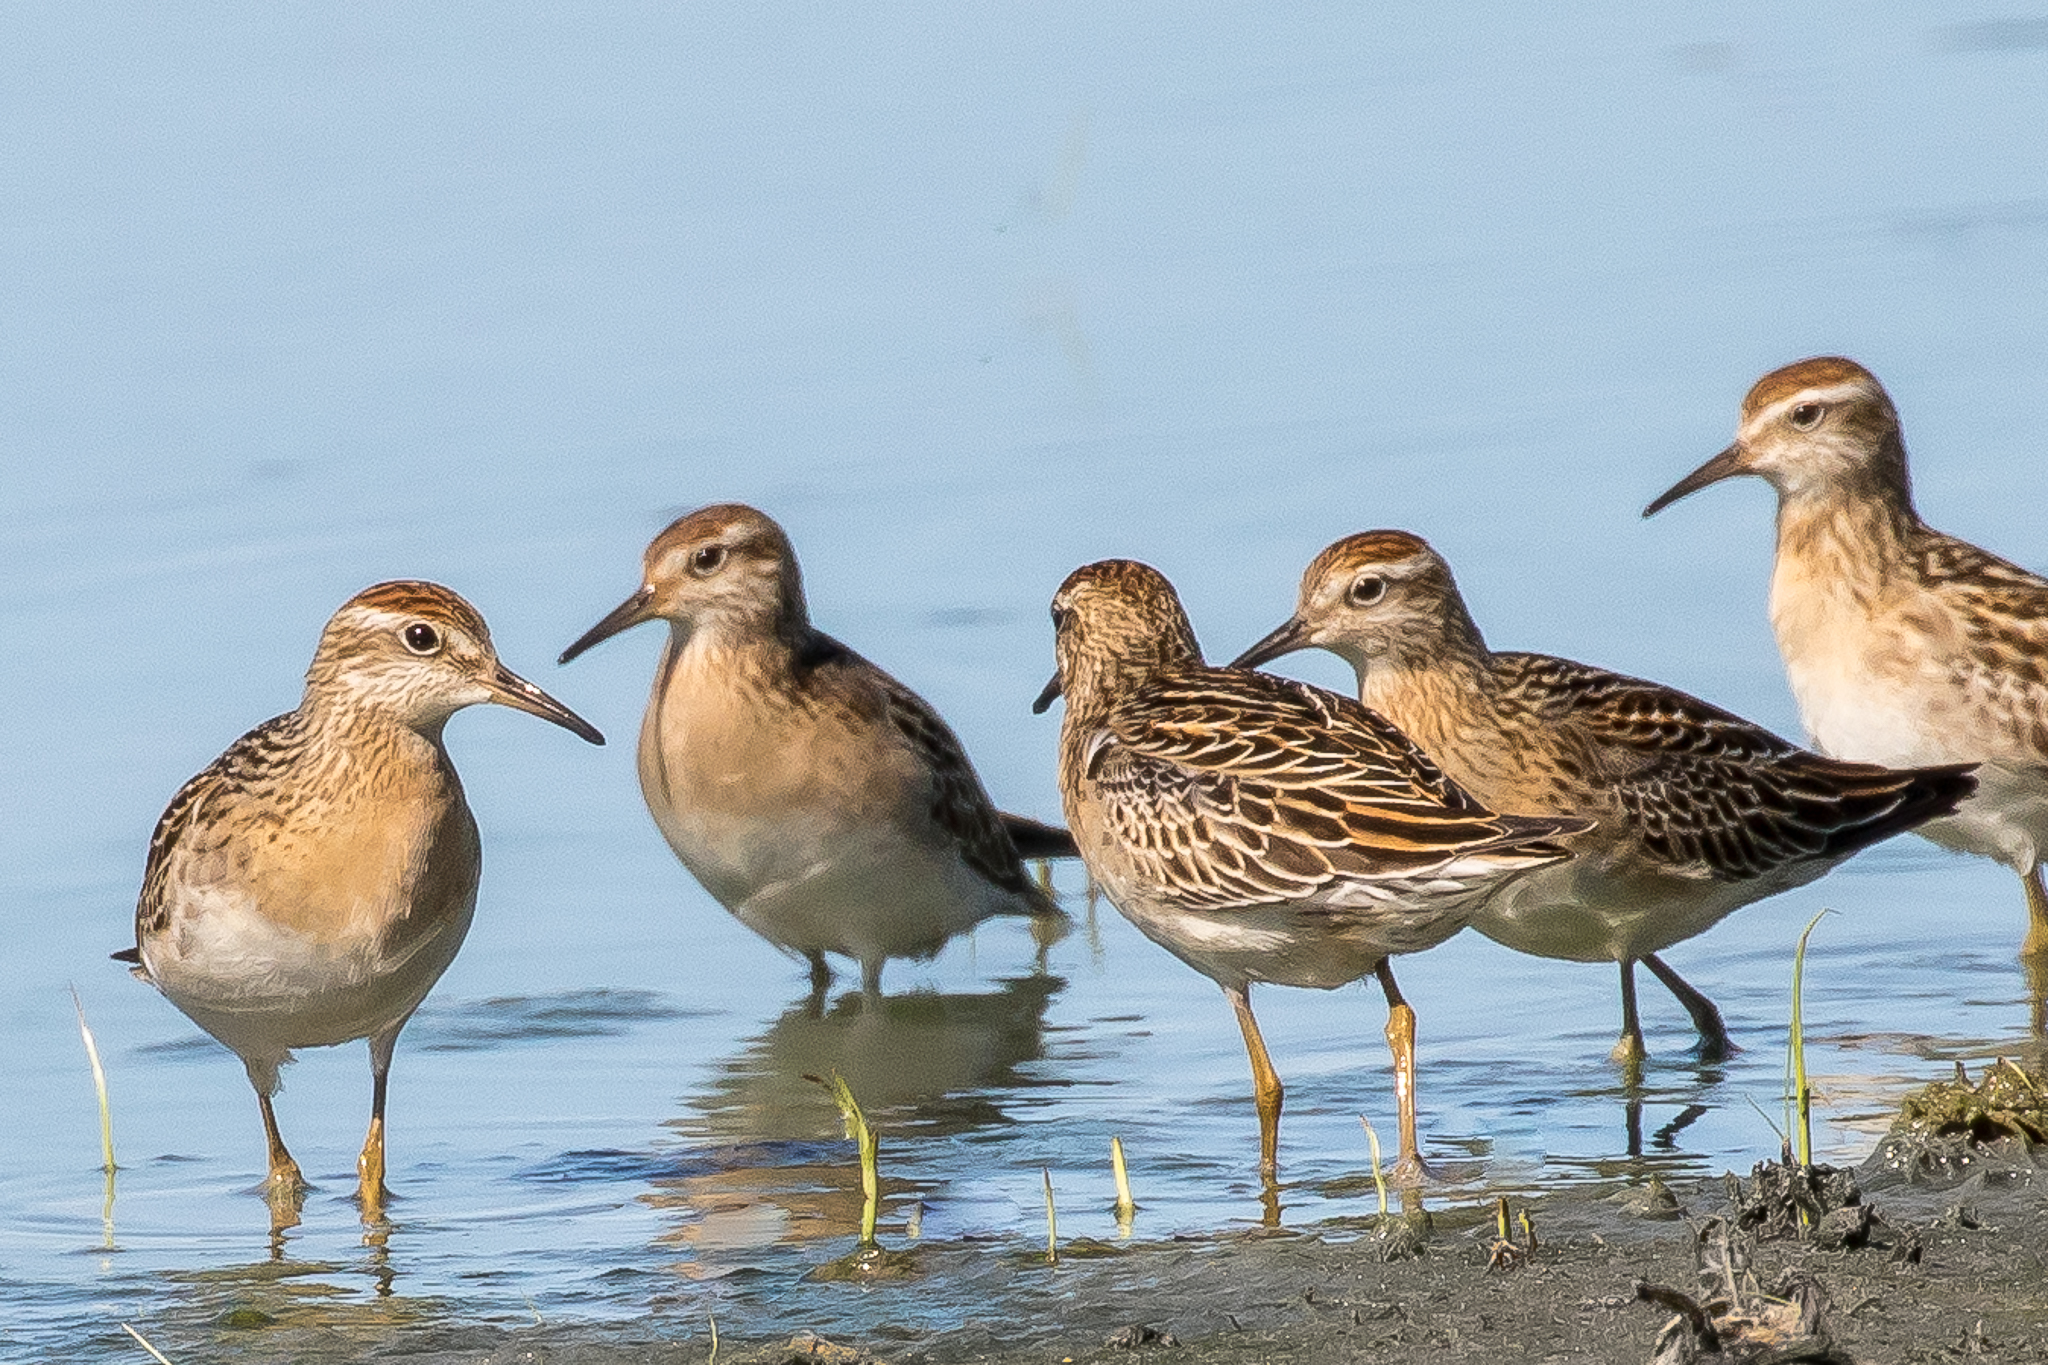 Sharp-tailed Sandpipers breed in Siberia then cross the Pacific to spend the summer at Australia's inland waterways. They feed on insects, molluscs and worms. Photographed at Fivebough Wetlands.